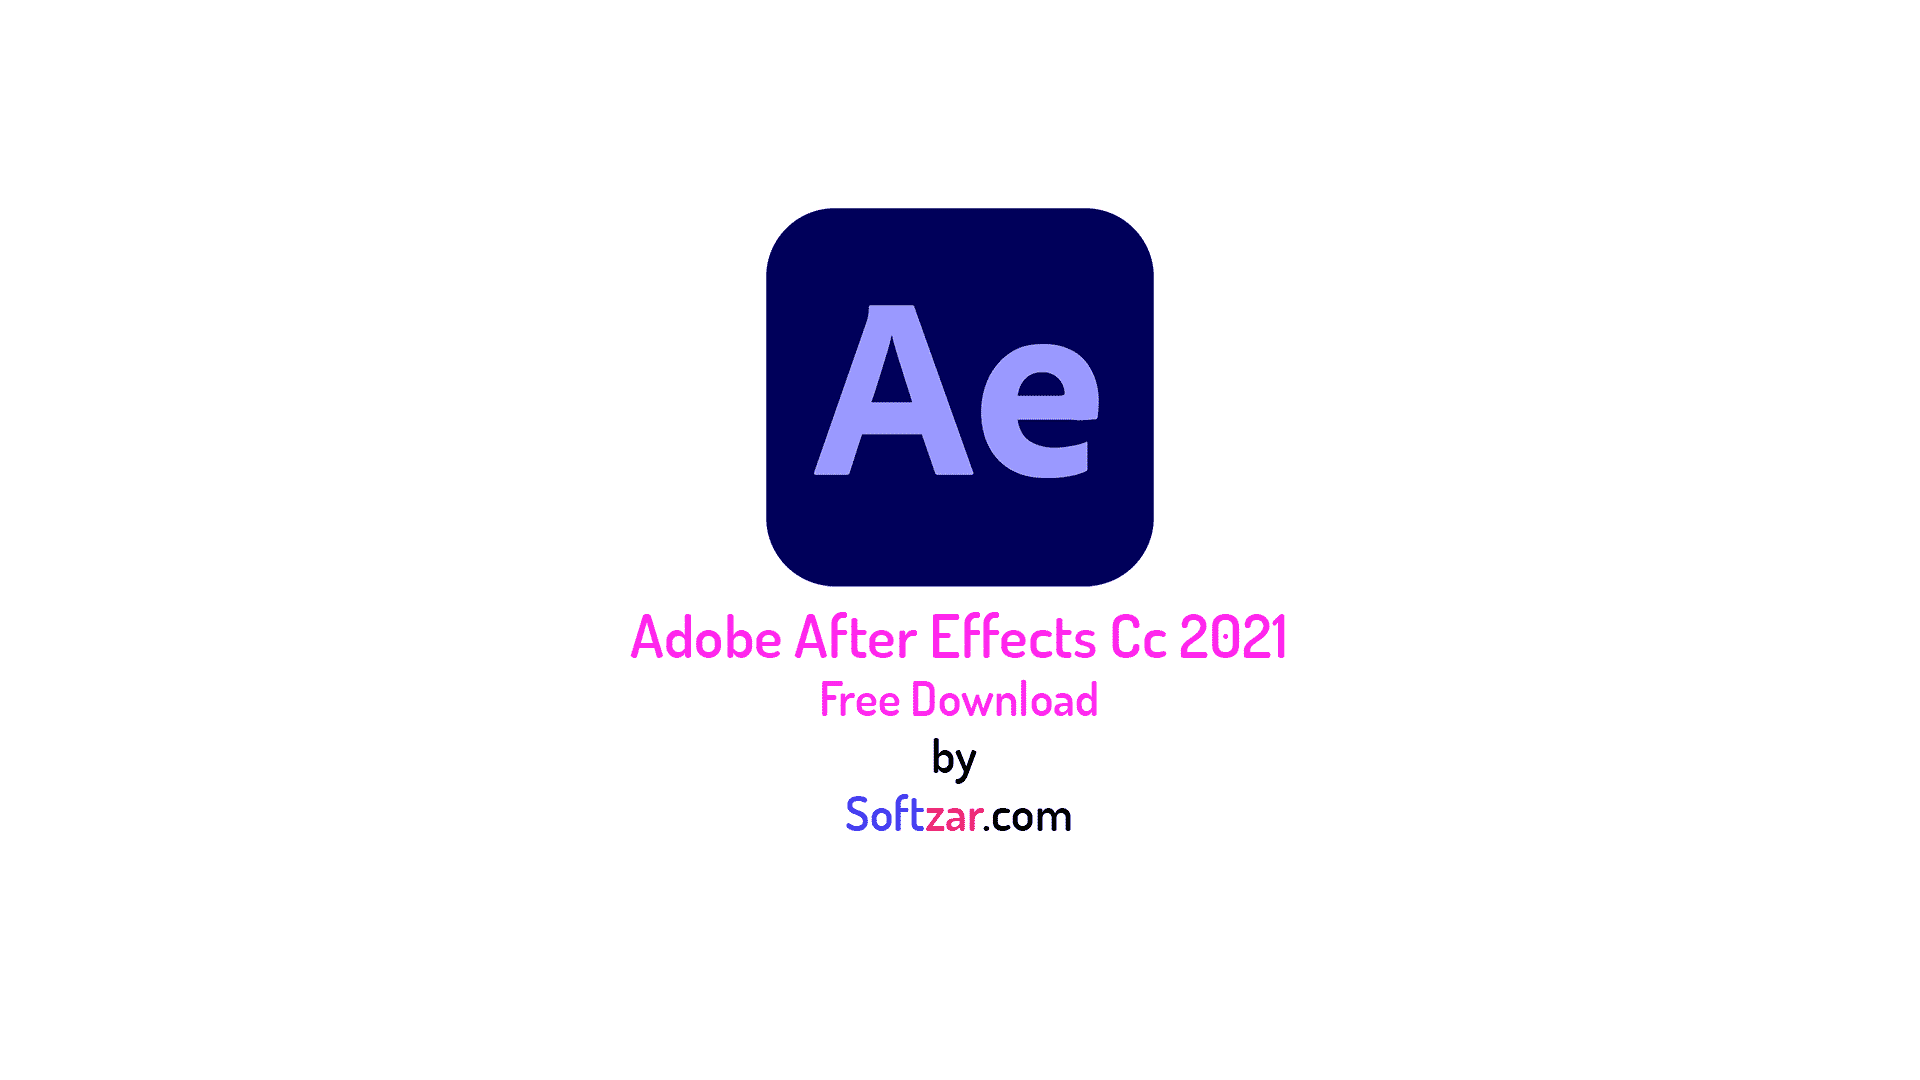 Adobe After Effects CC 2021 Free Download For Lifetime